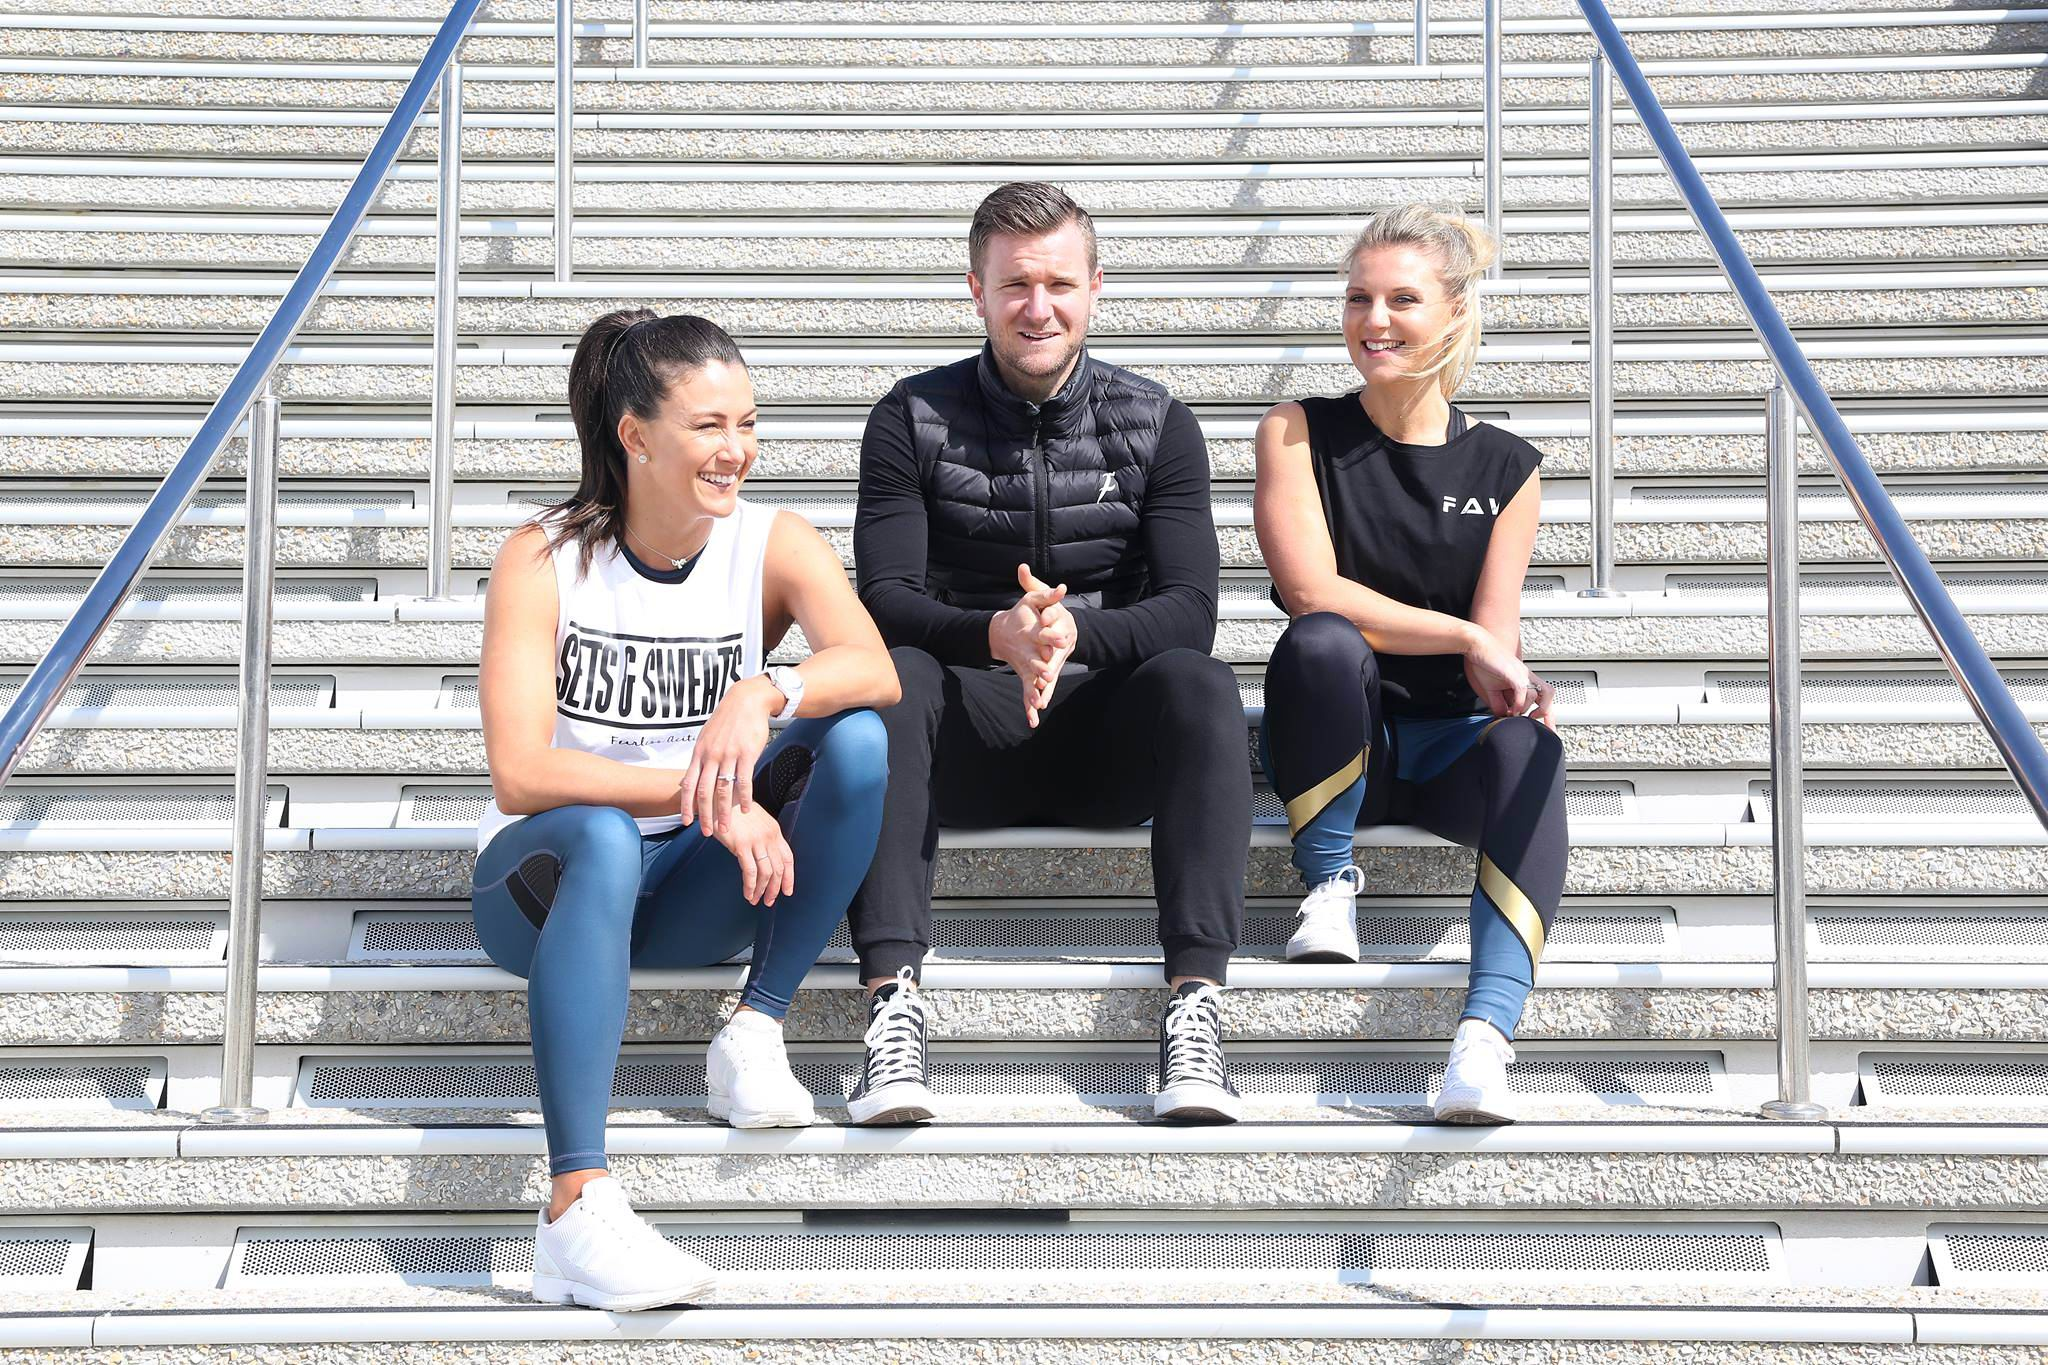 Inglewood player Calum O'Connell fearless in kicking along active wear label